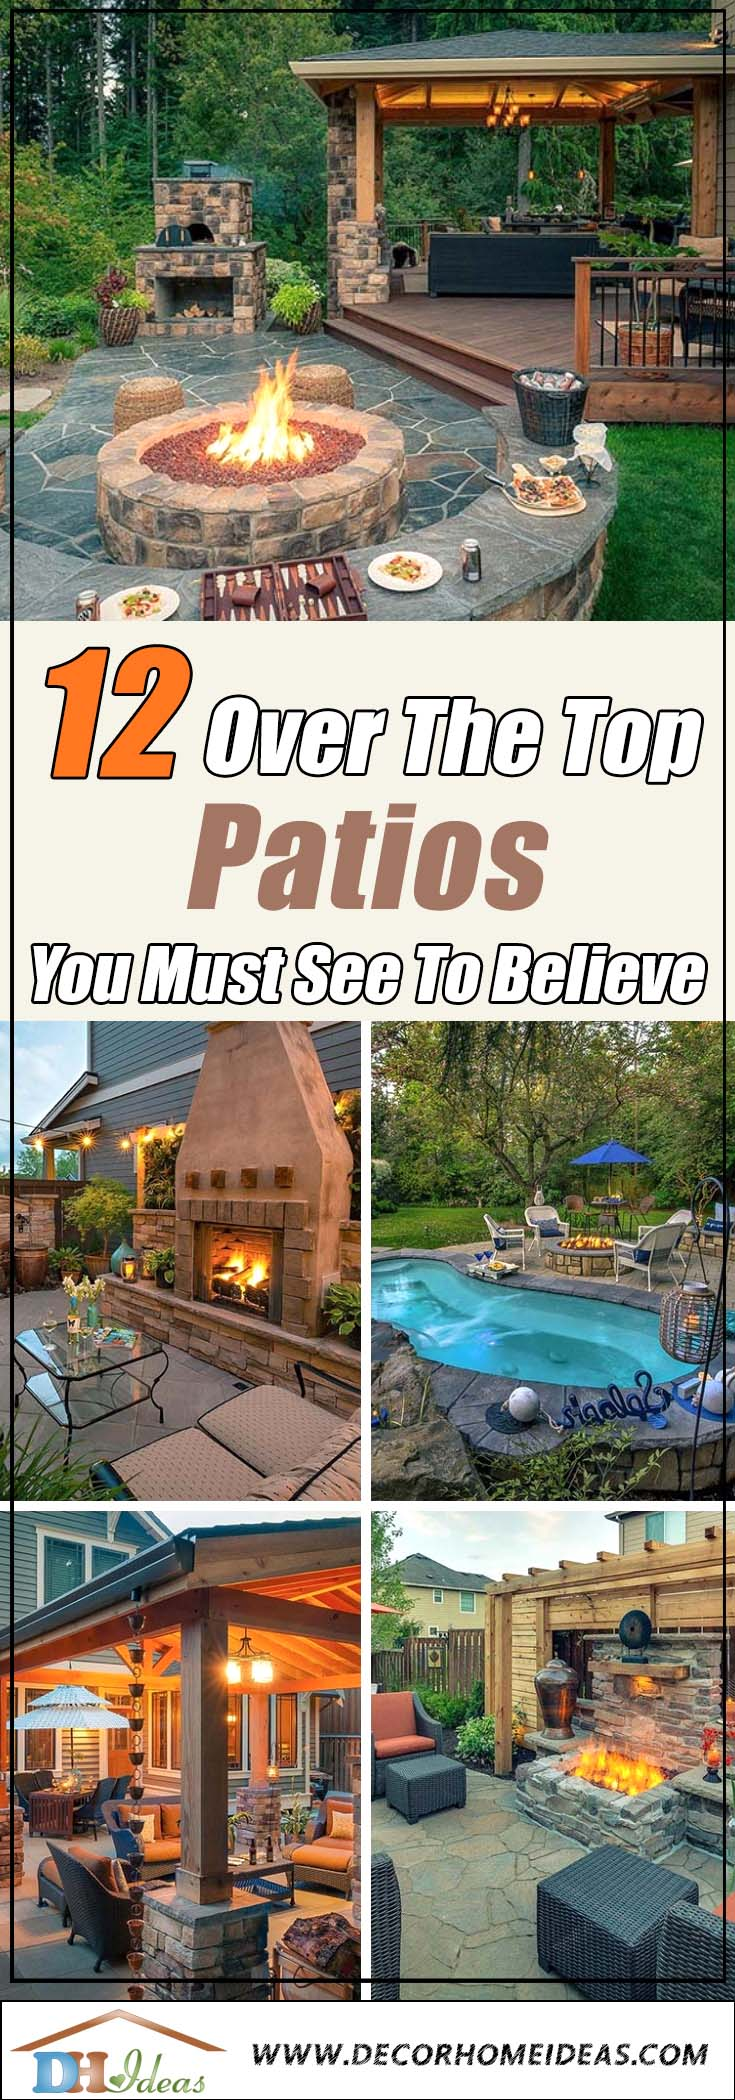 12 Over the Top Patios You Must See Believe | Amazing patio ideas and design for your backyard #patio #homedecor #backyard #furniture #garden #decoratingideas #decorhomeideas